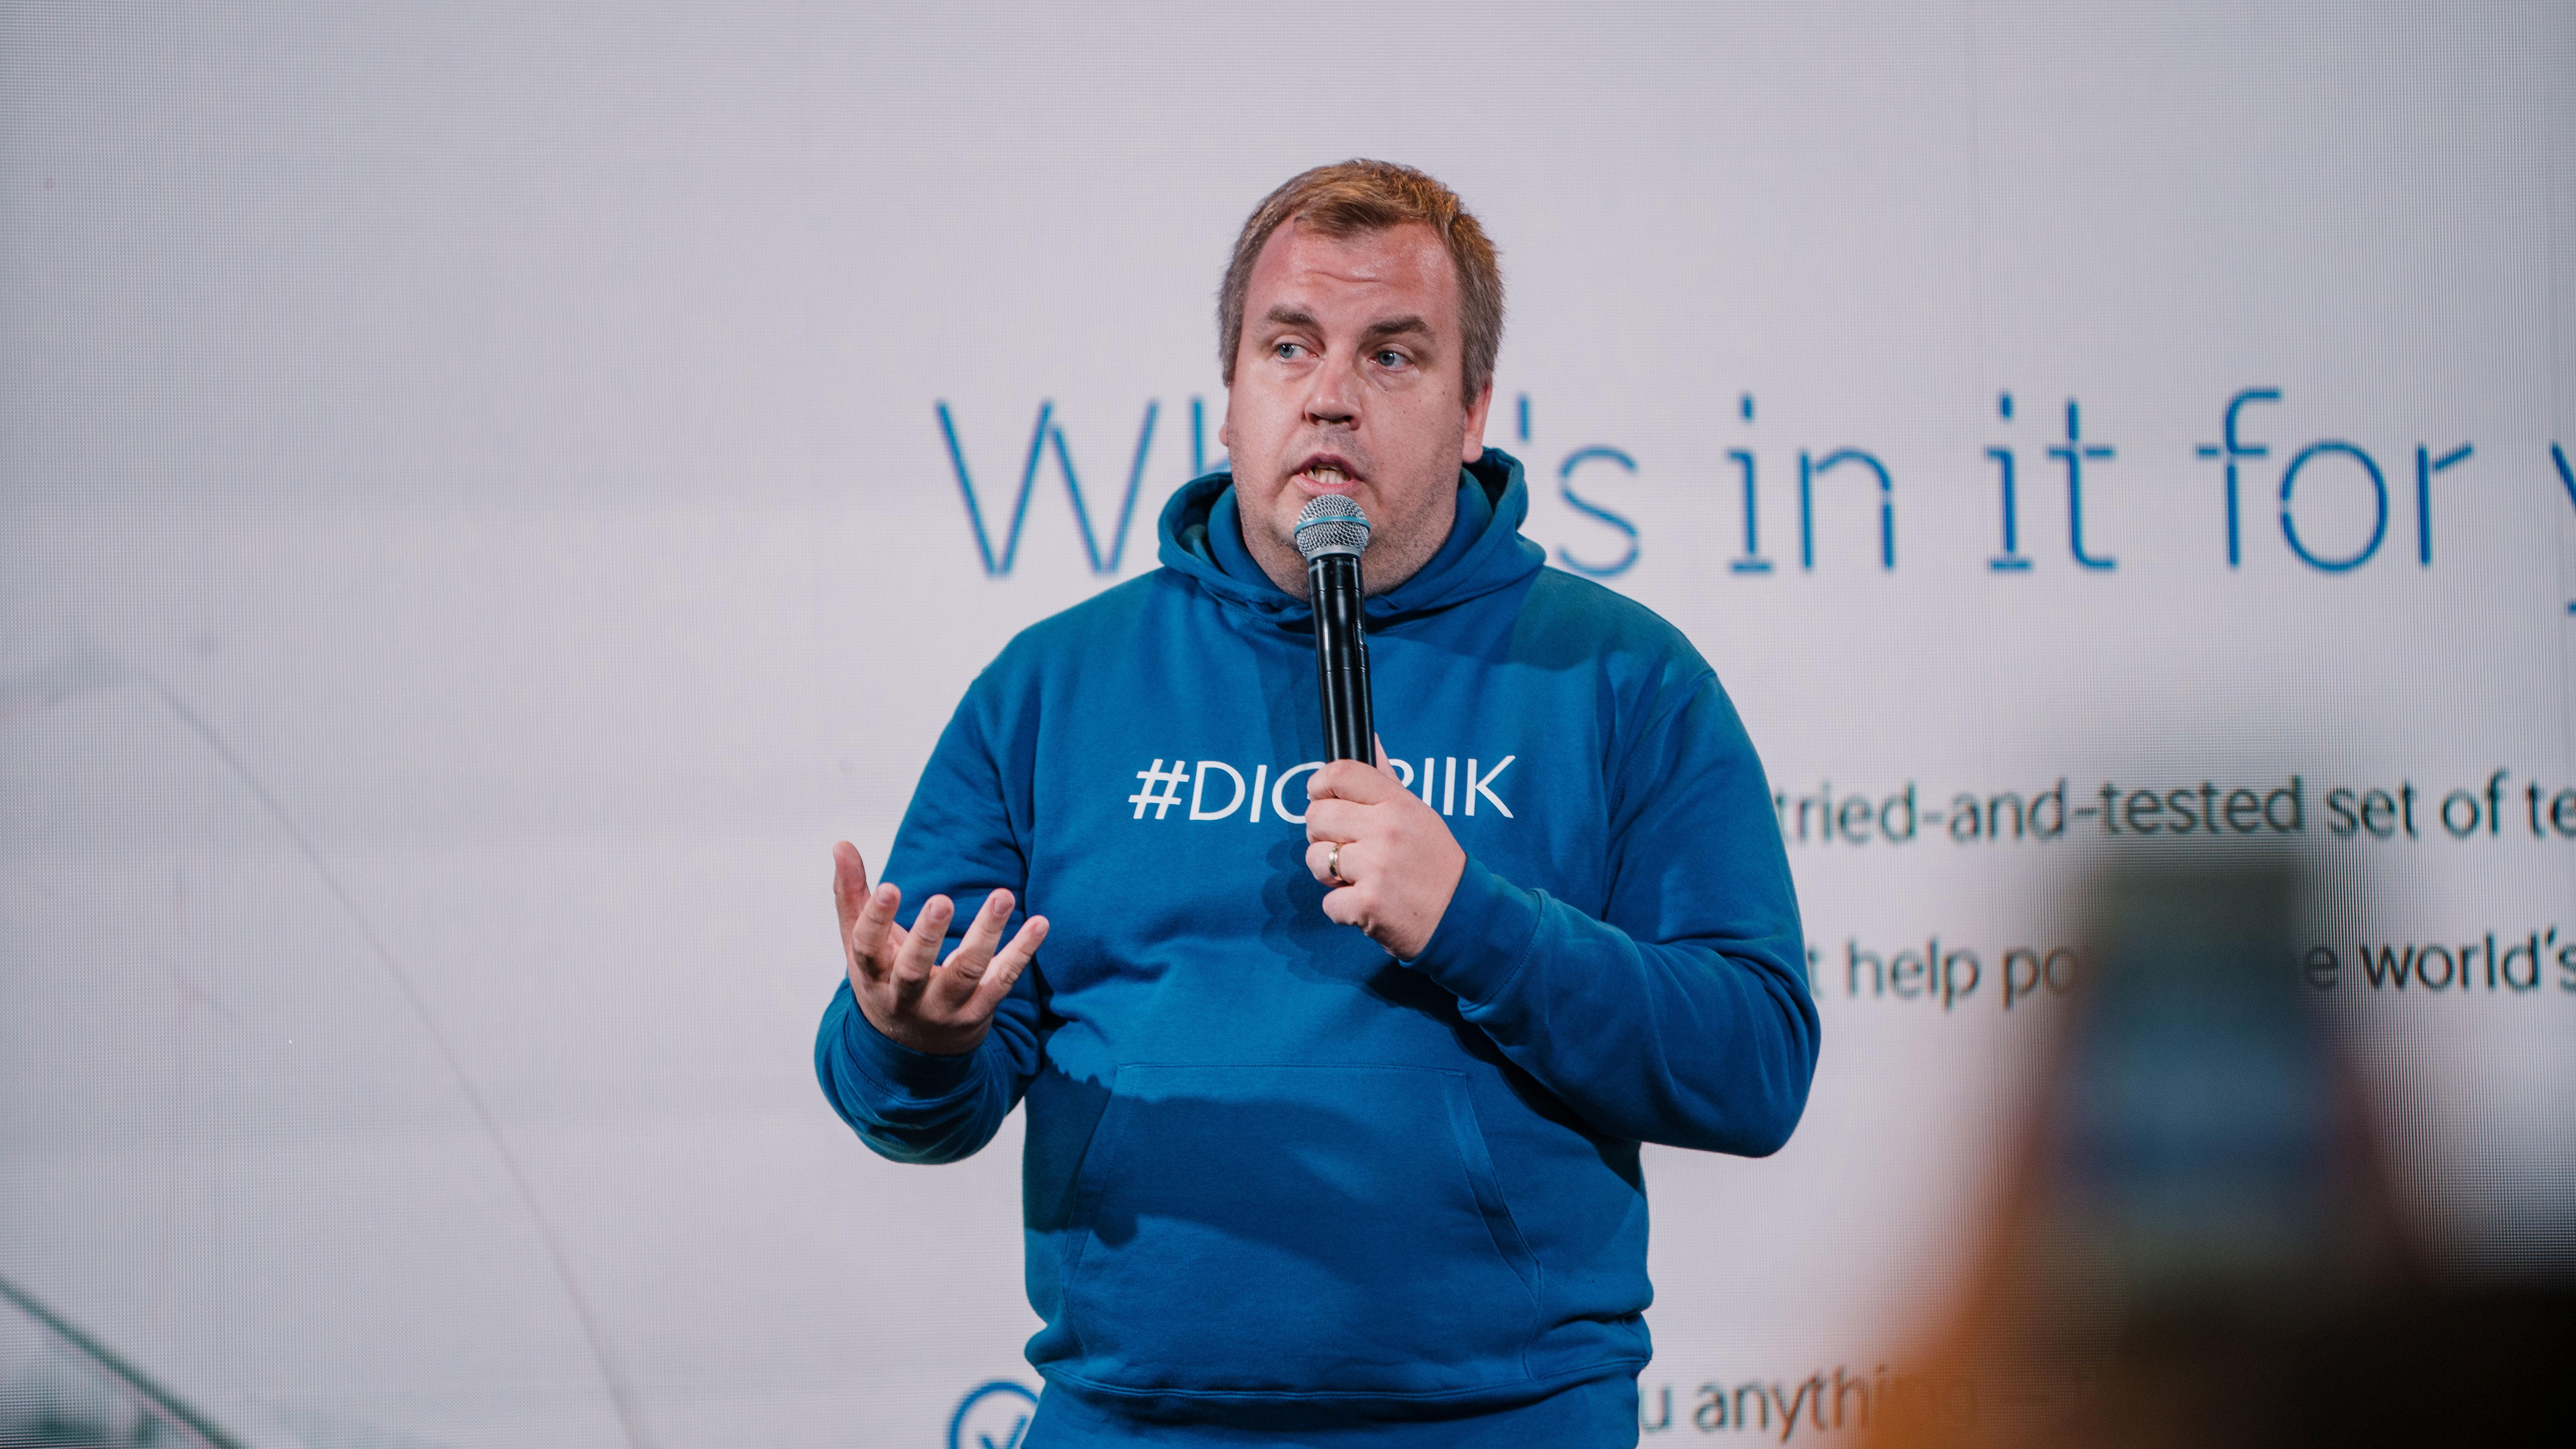 A picture showing Siim Sikkut giving a presentation in a bright blue hooded sweatshirt